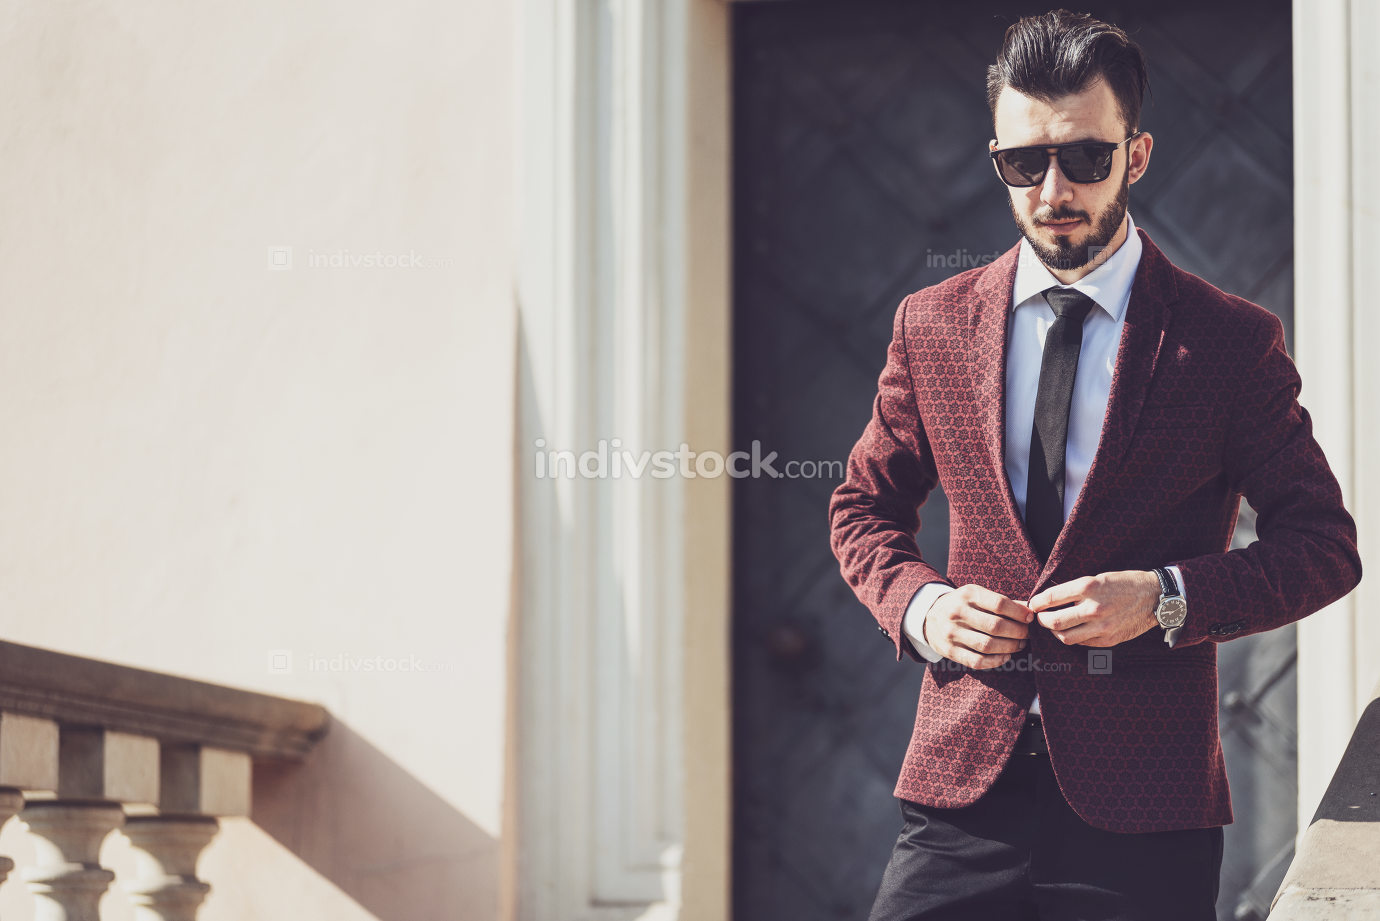 Fashionable businessman outdoors